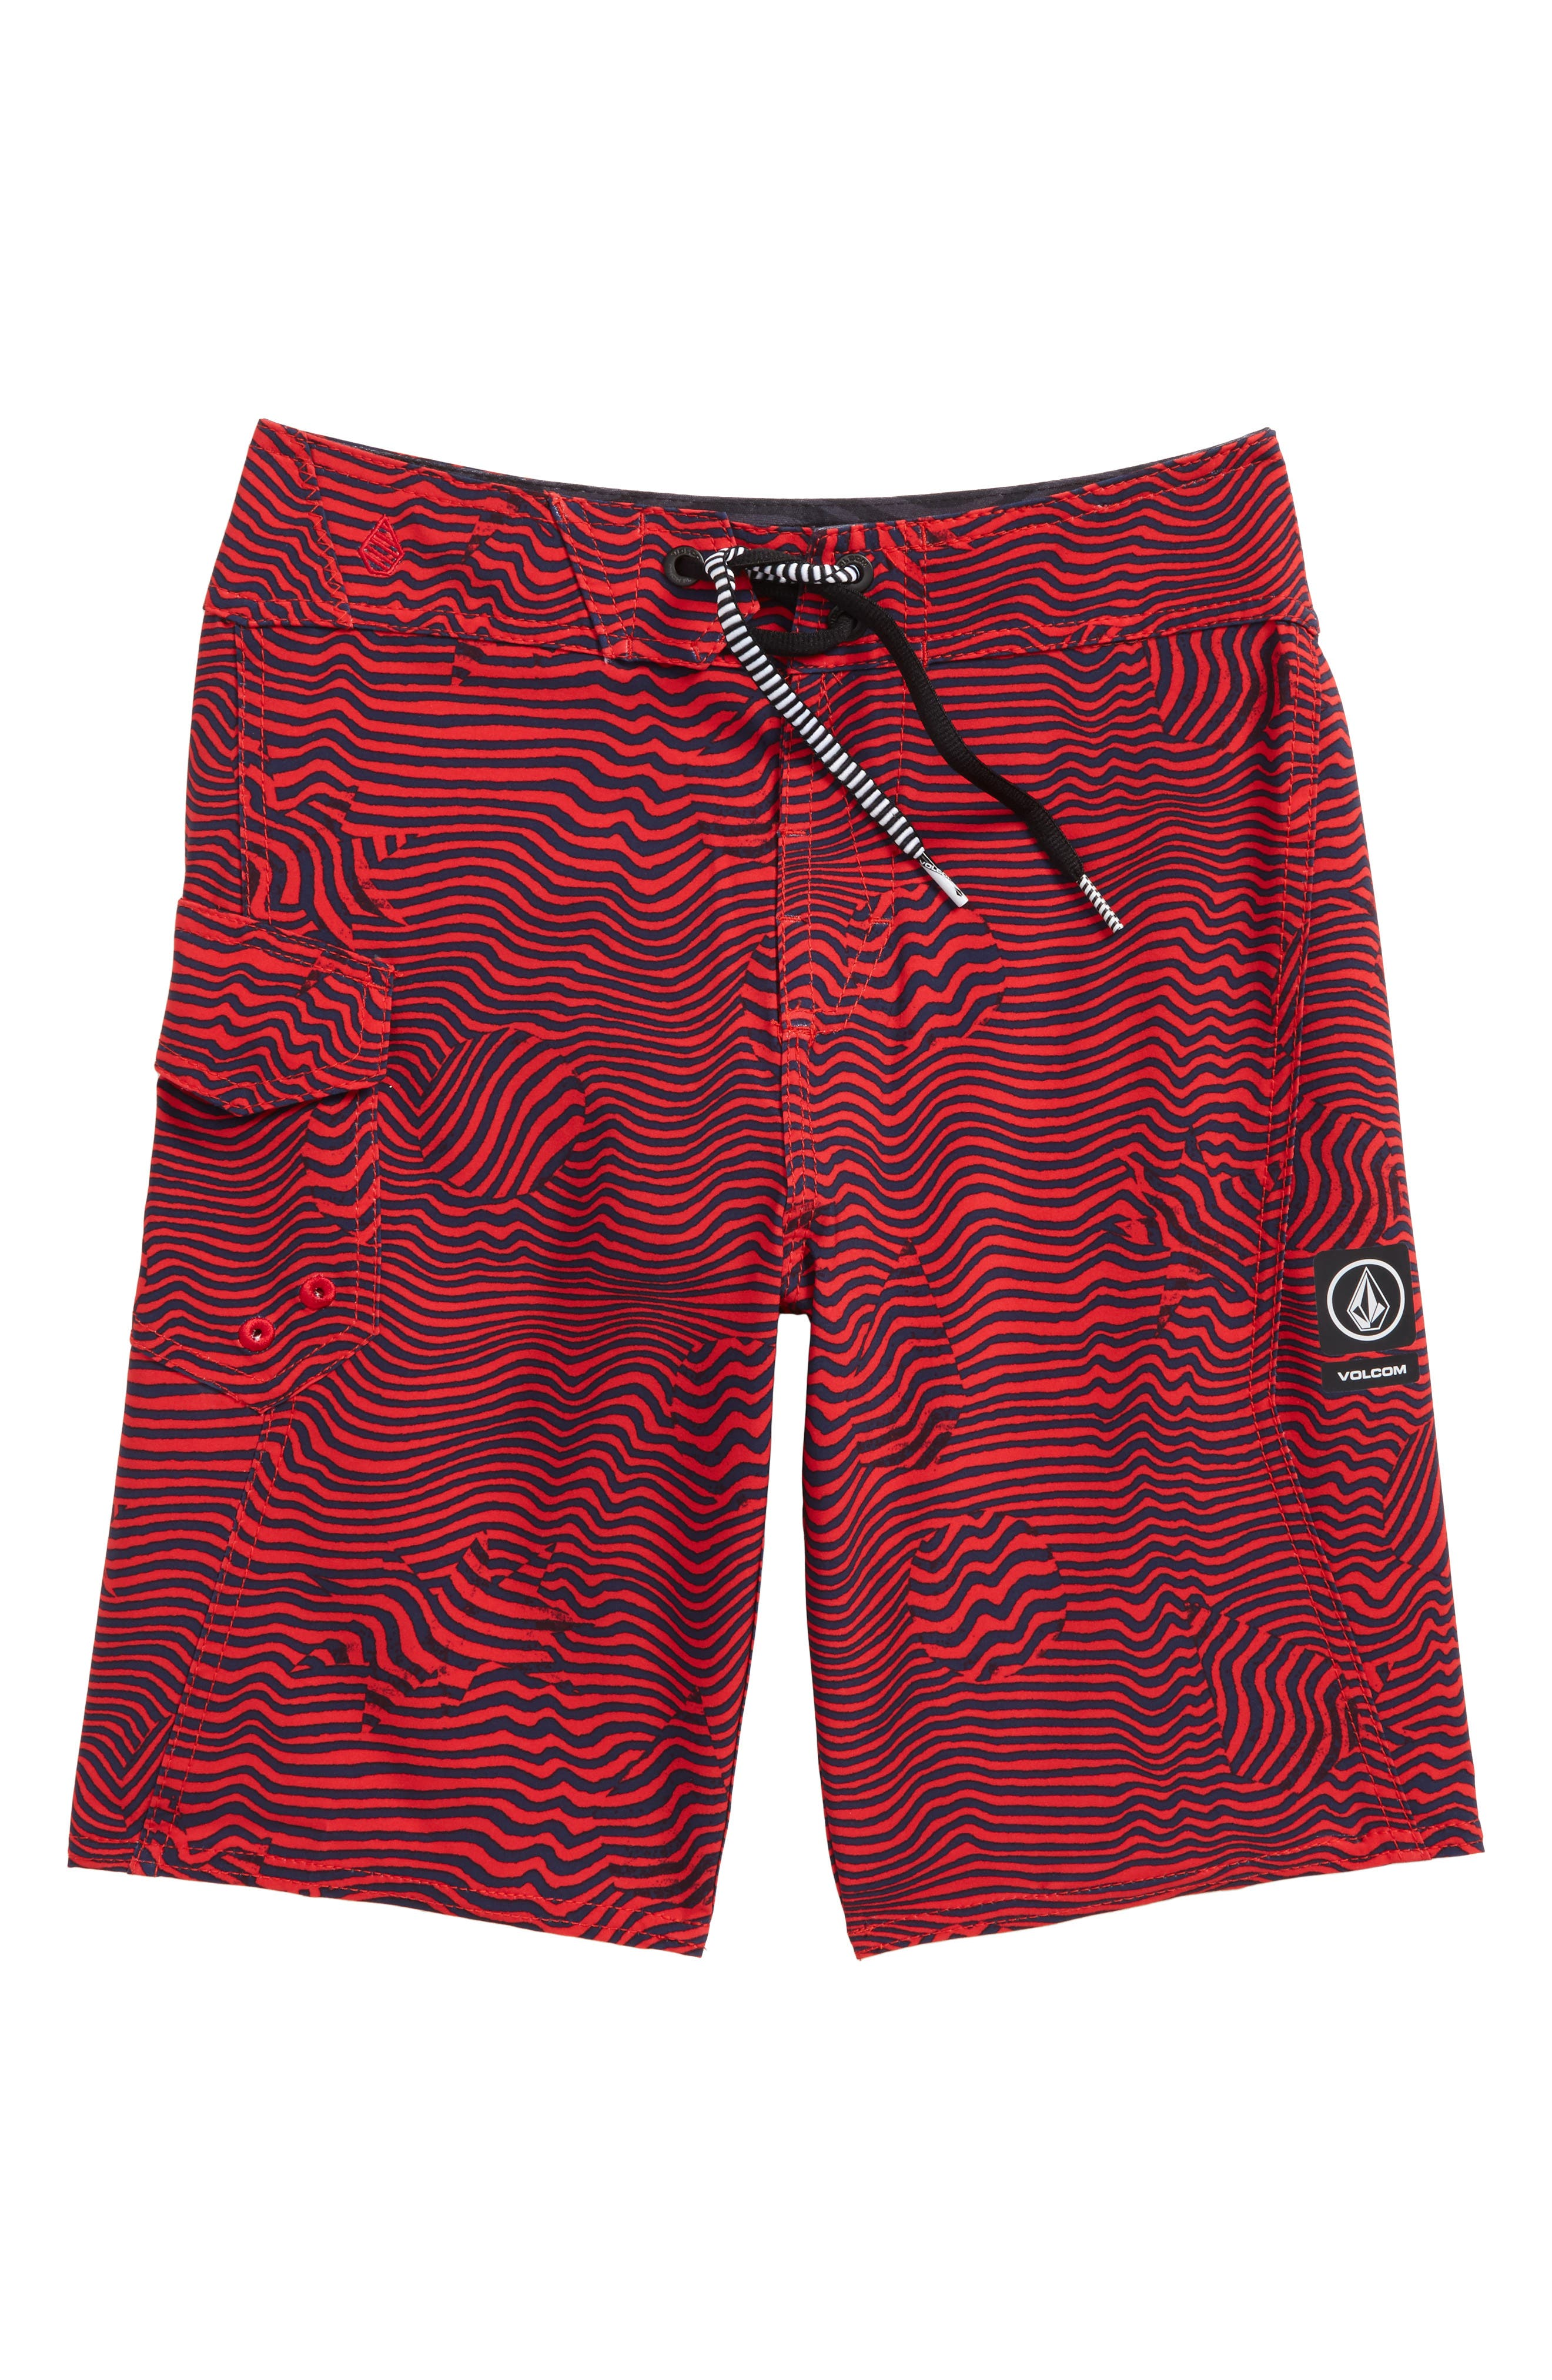 Volcom Magnetic Stone Board Shorts (Big Boys)